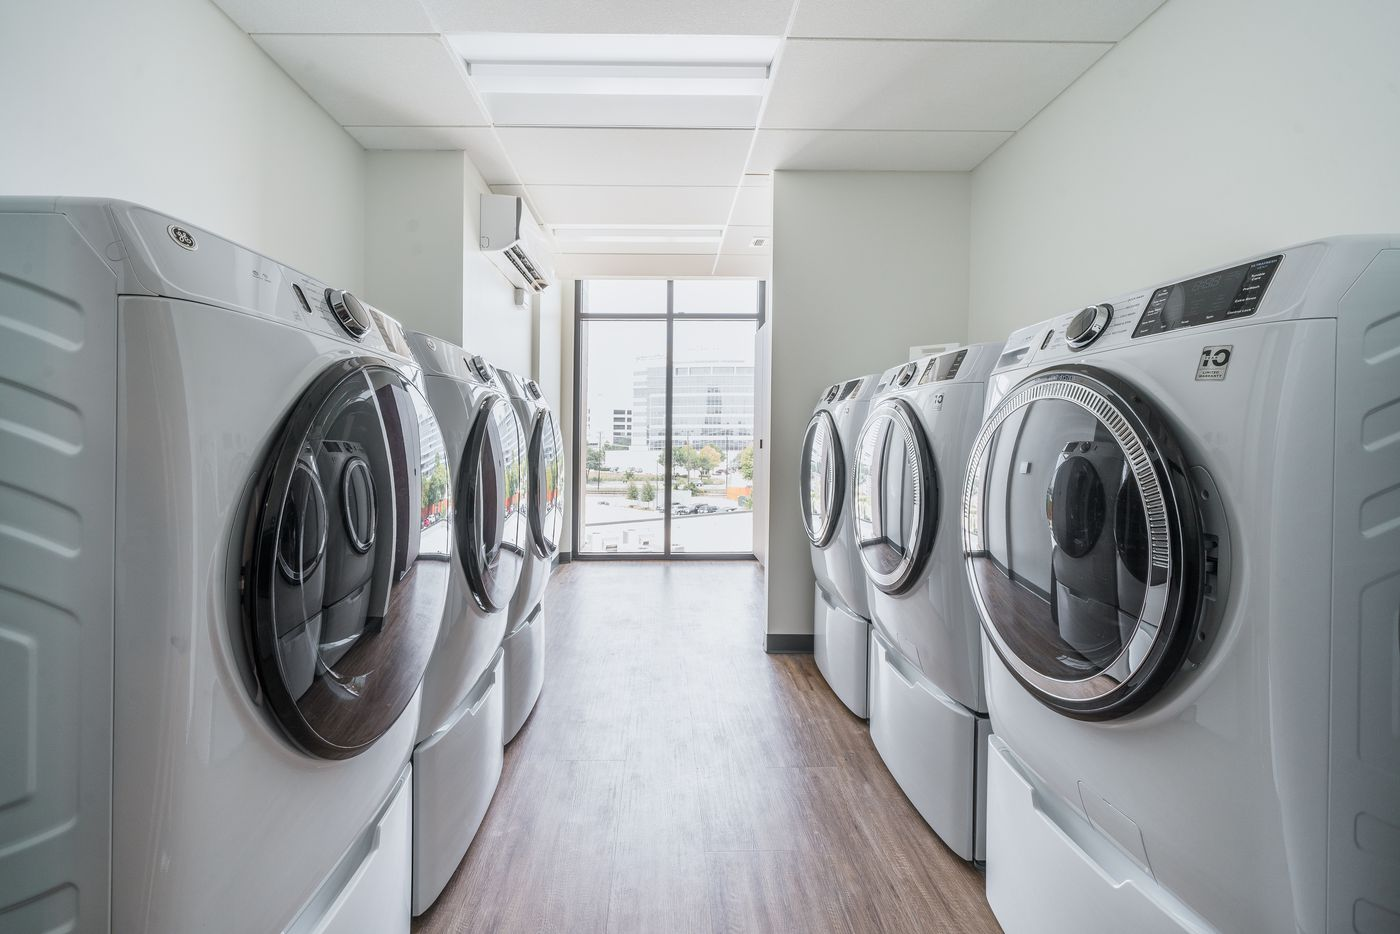 There is a common laundry room on each of the three guest suite floors of the Gene and Jerry Jones Family Hope Lodge in Dallas.